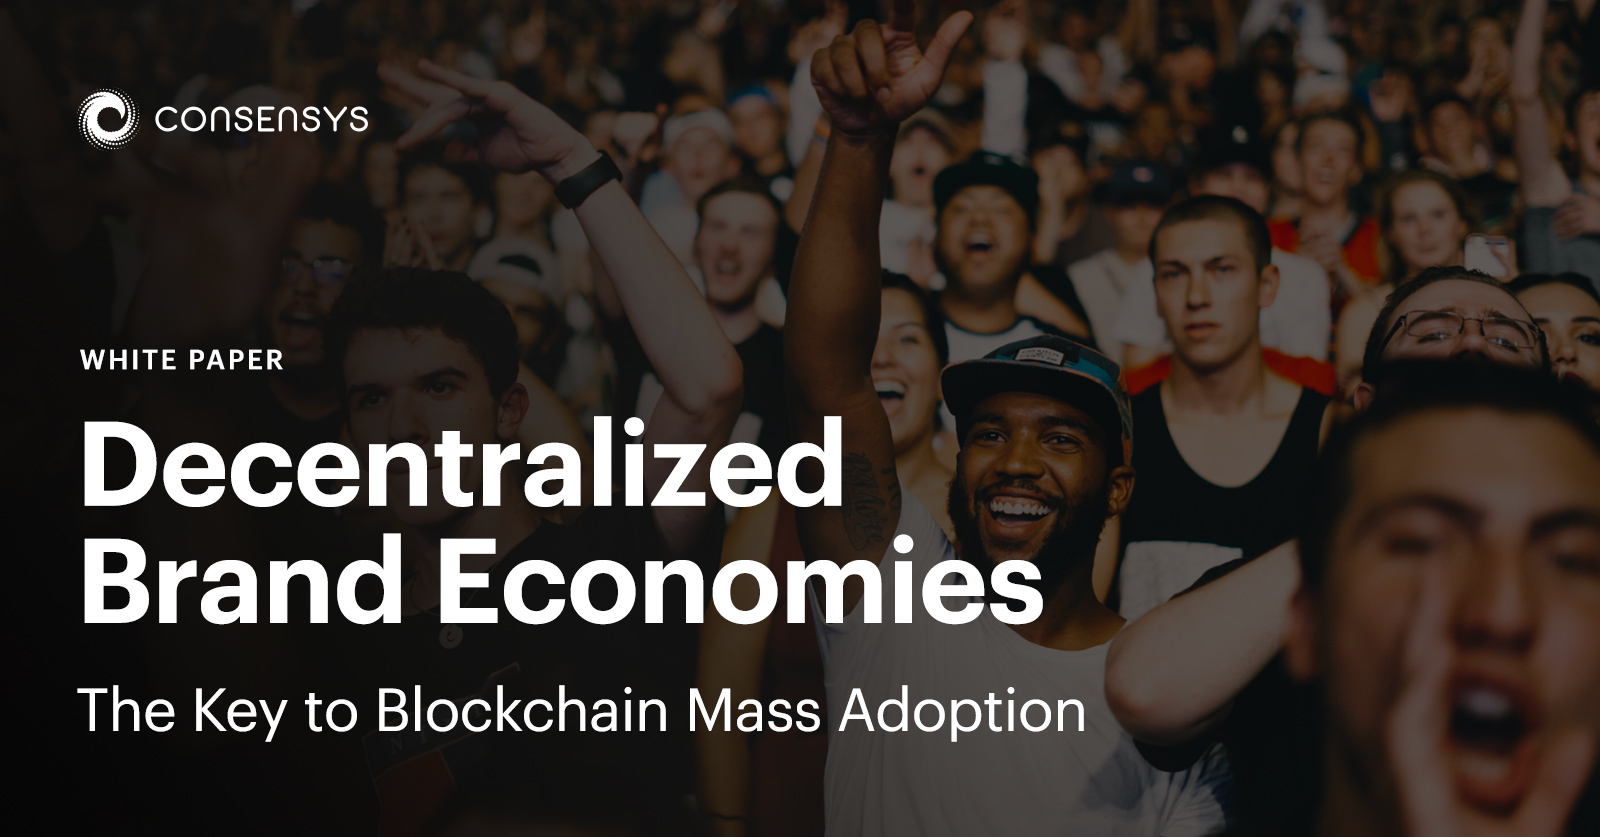 https://consensys.net/blog/enterprise-blockchain/decentralized-brand-economies-the-key-to-blockchain-mass-adoption/